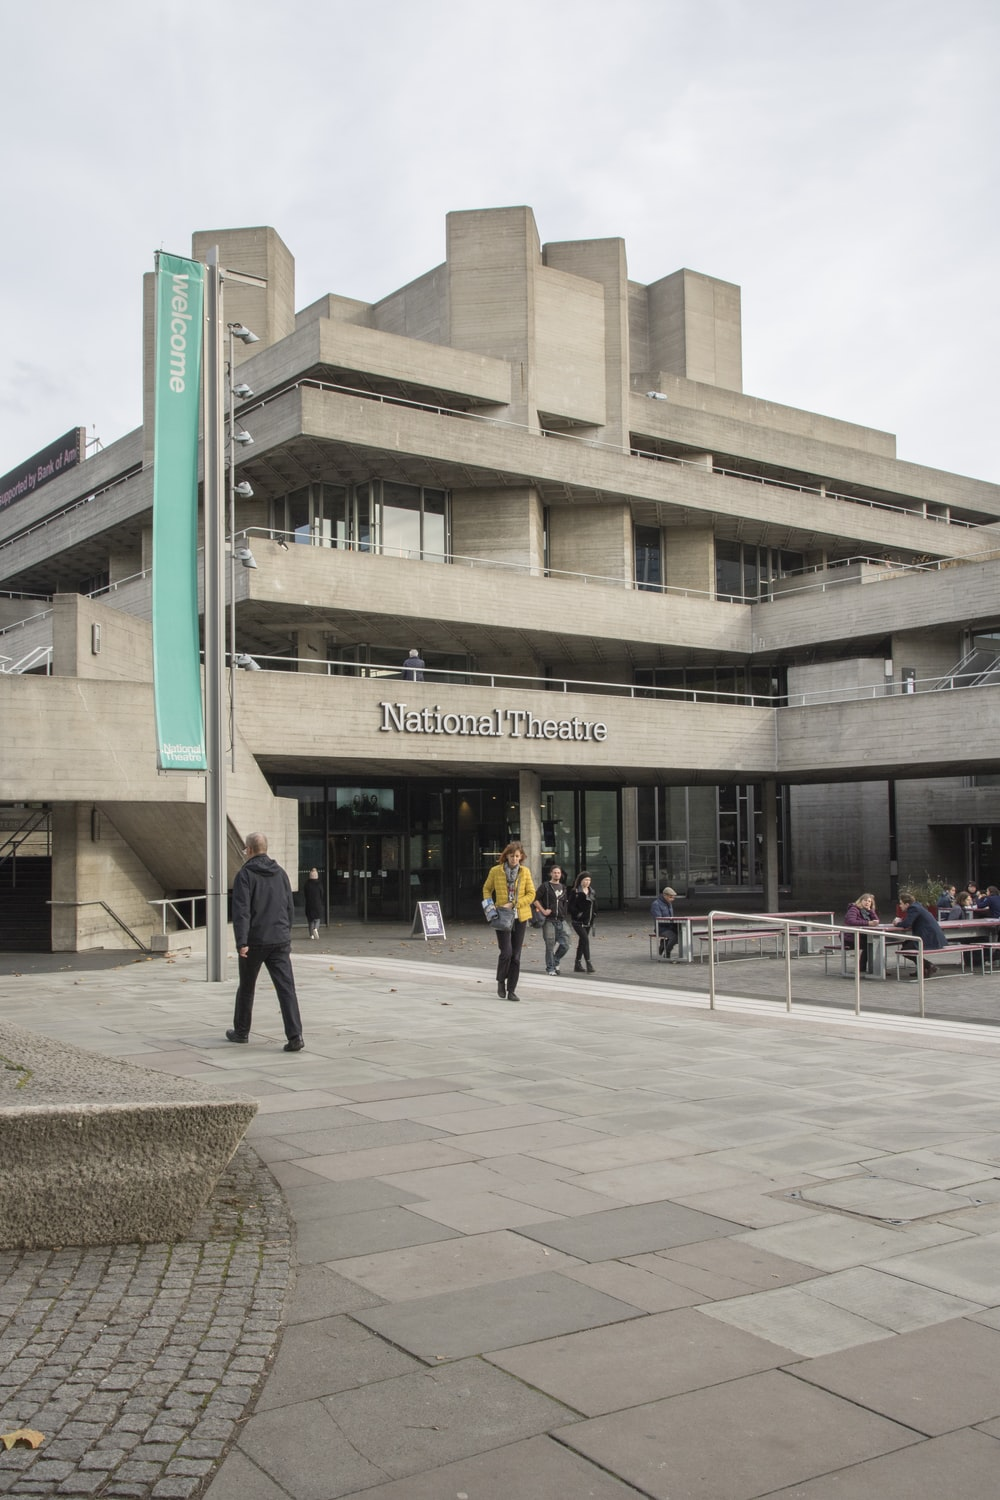 people walking in front of National Theatre building